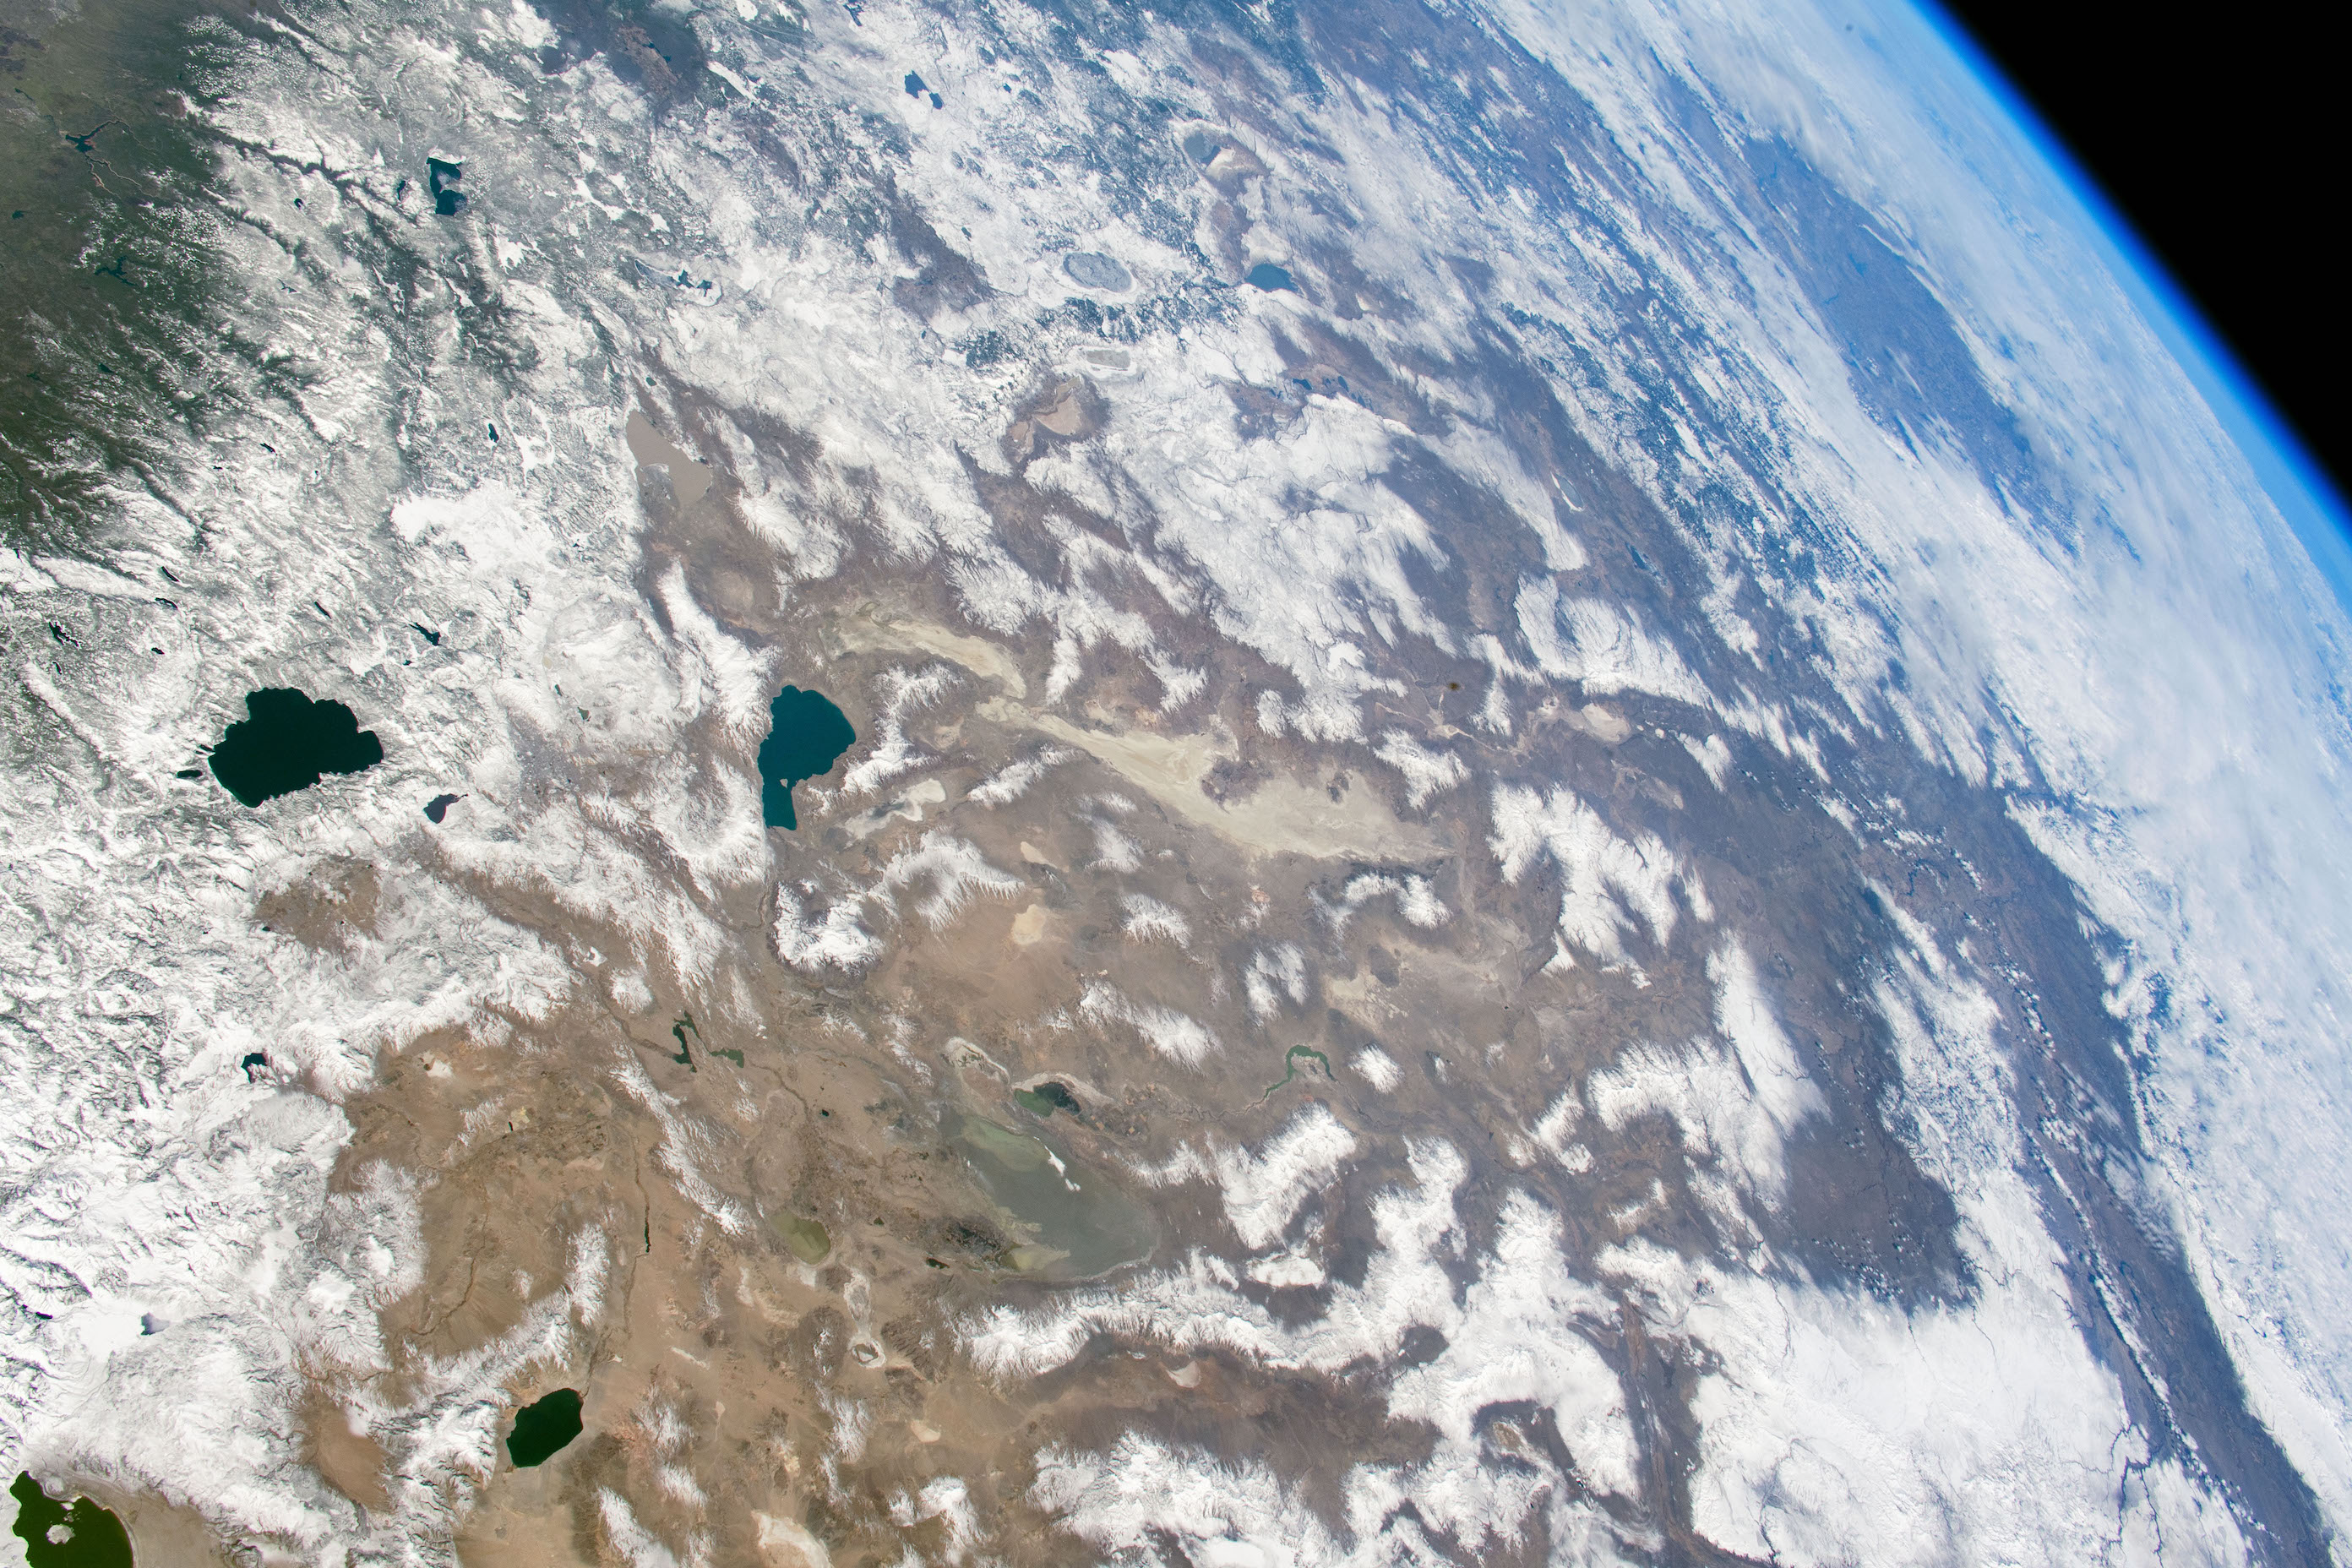 Today's Image of the Day comes from the NASA Earth Observatory and features a look at Lake Tahoe and the Great Basin Desert.